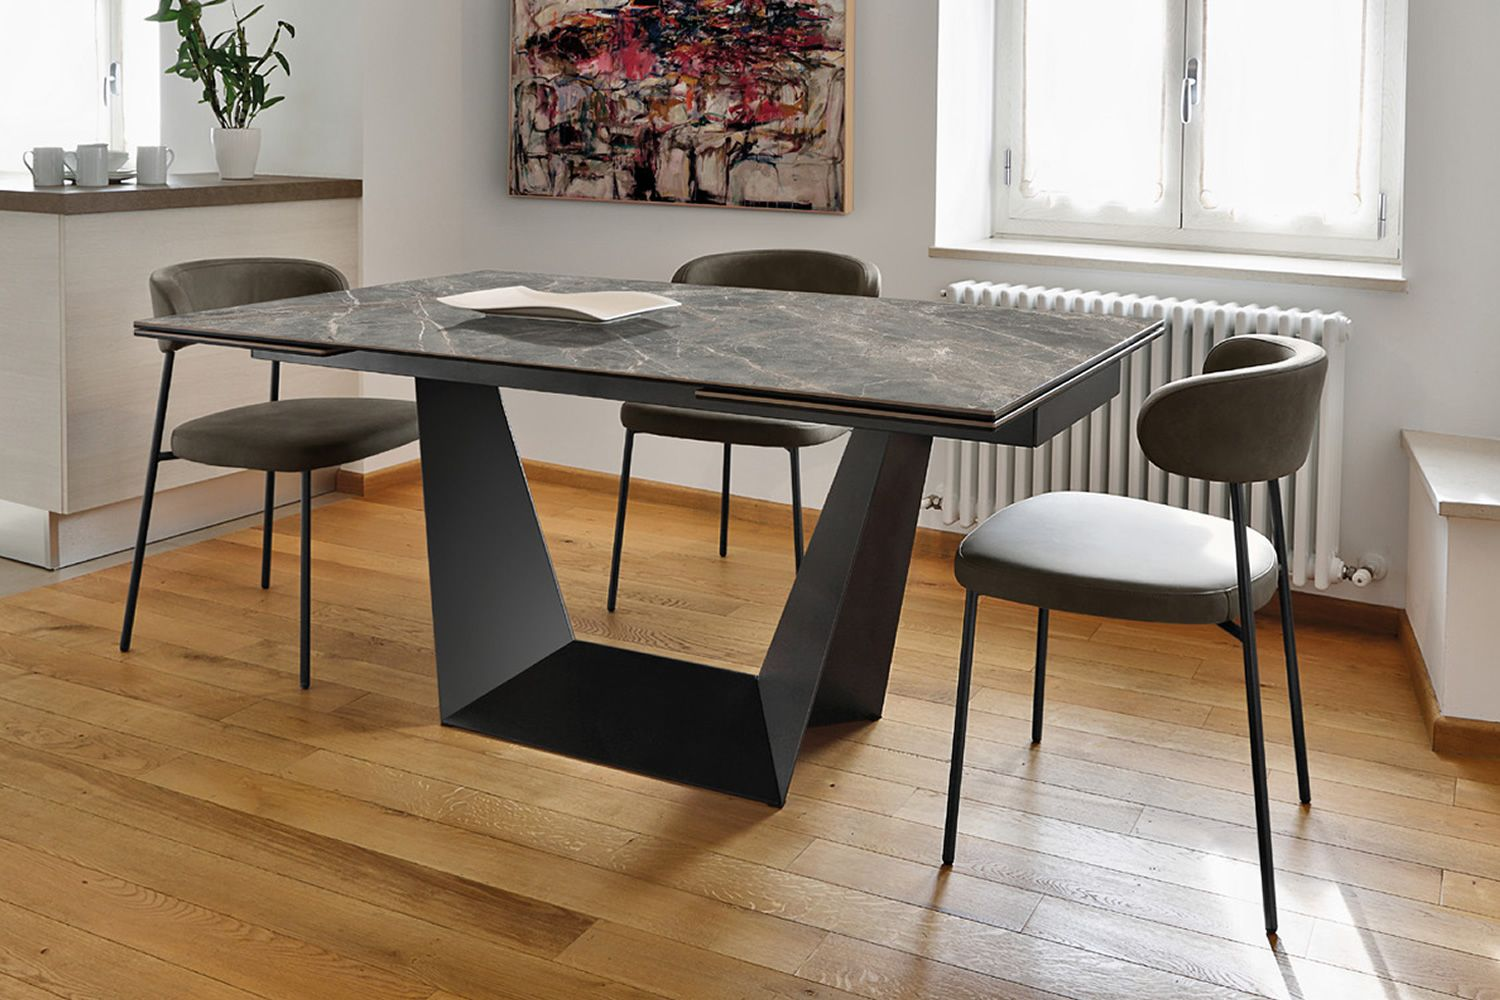 Extendable table made of lacquered metal with ceramic top